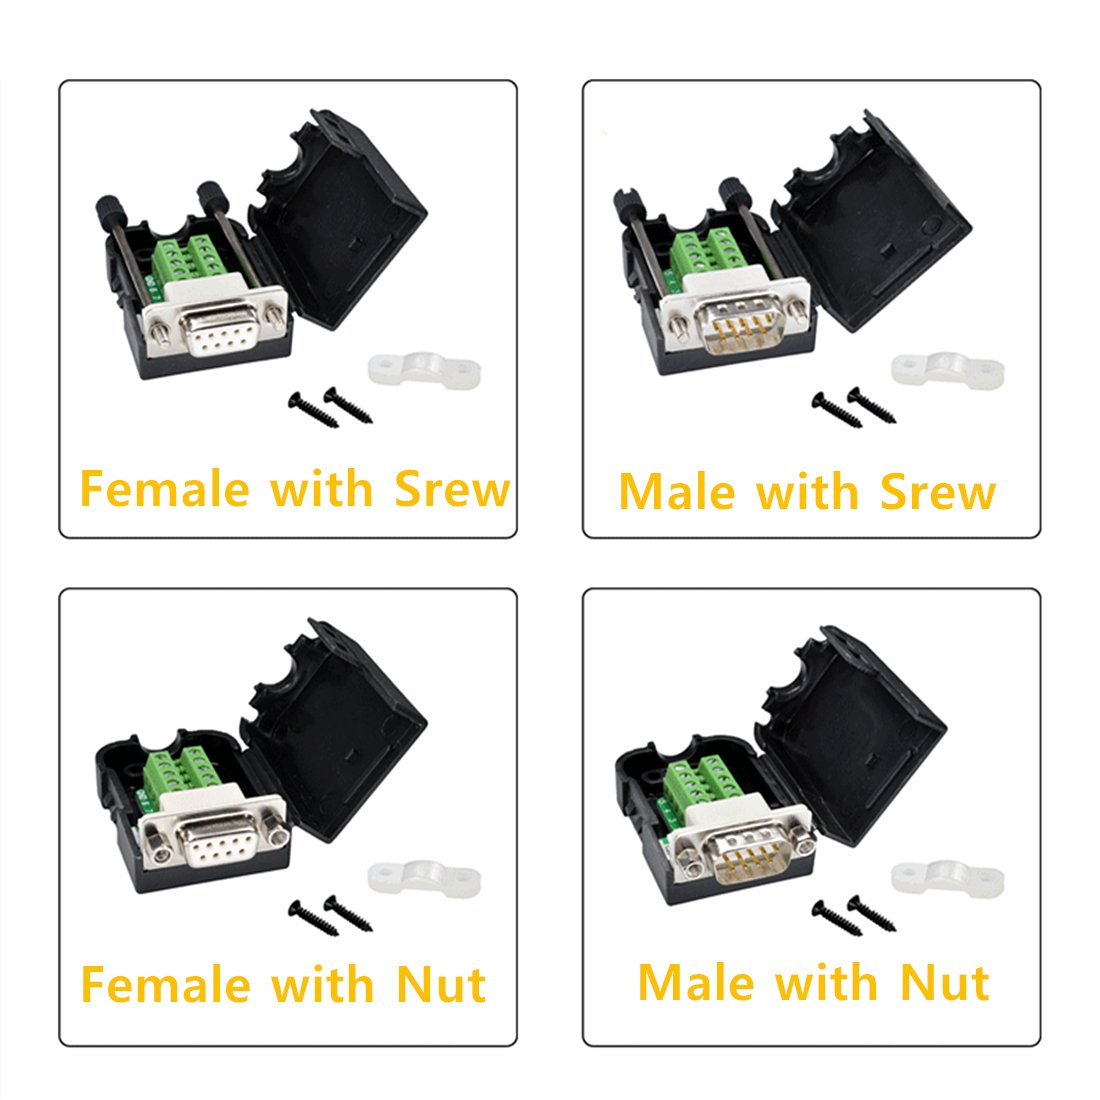 Male with Nut Oiyagai DB9 D-SUB RS232 VGA Adapter 9 Pin Signals Terminal Breakout Plastic Cover 2 Row